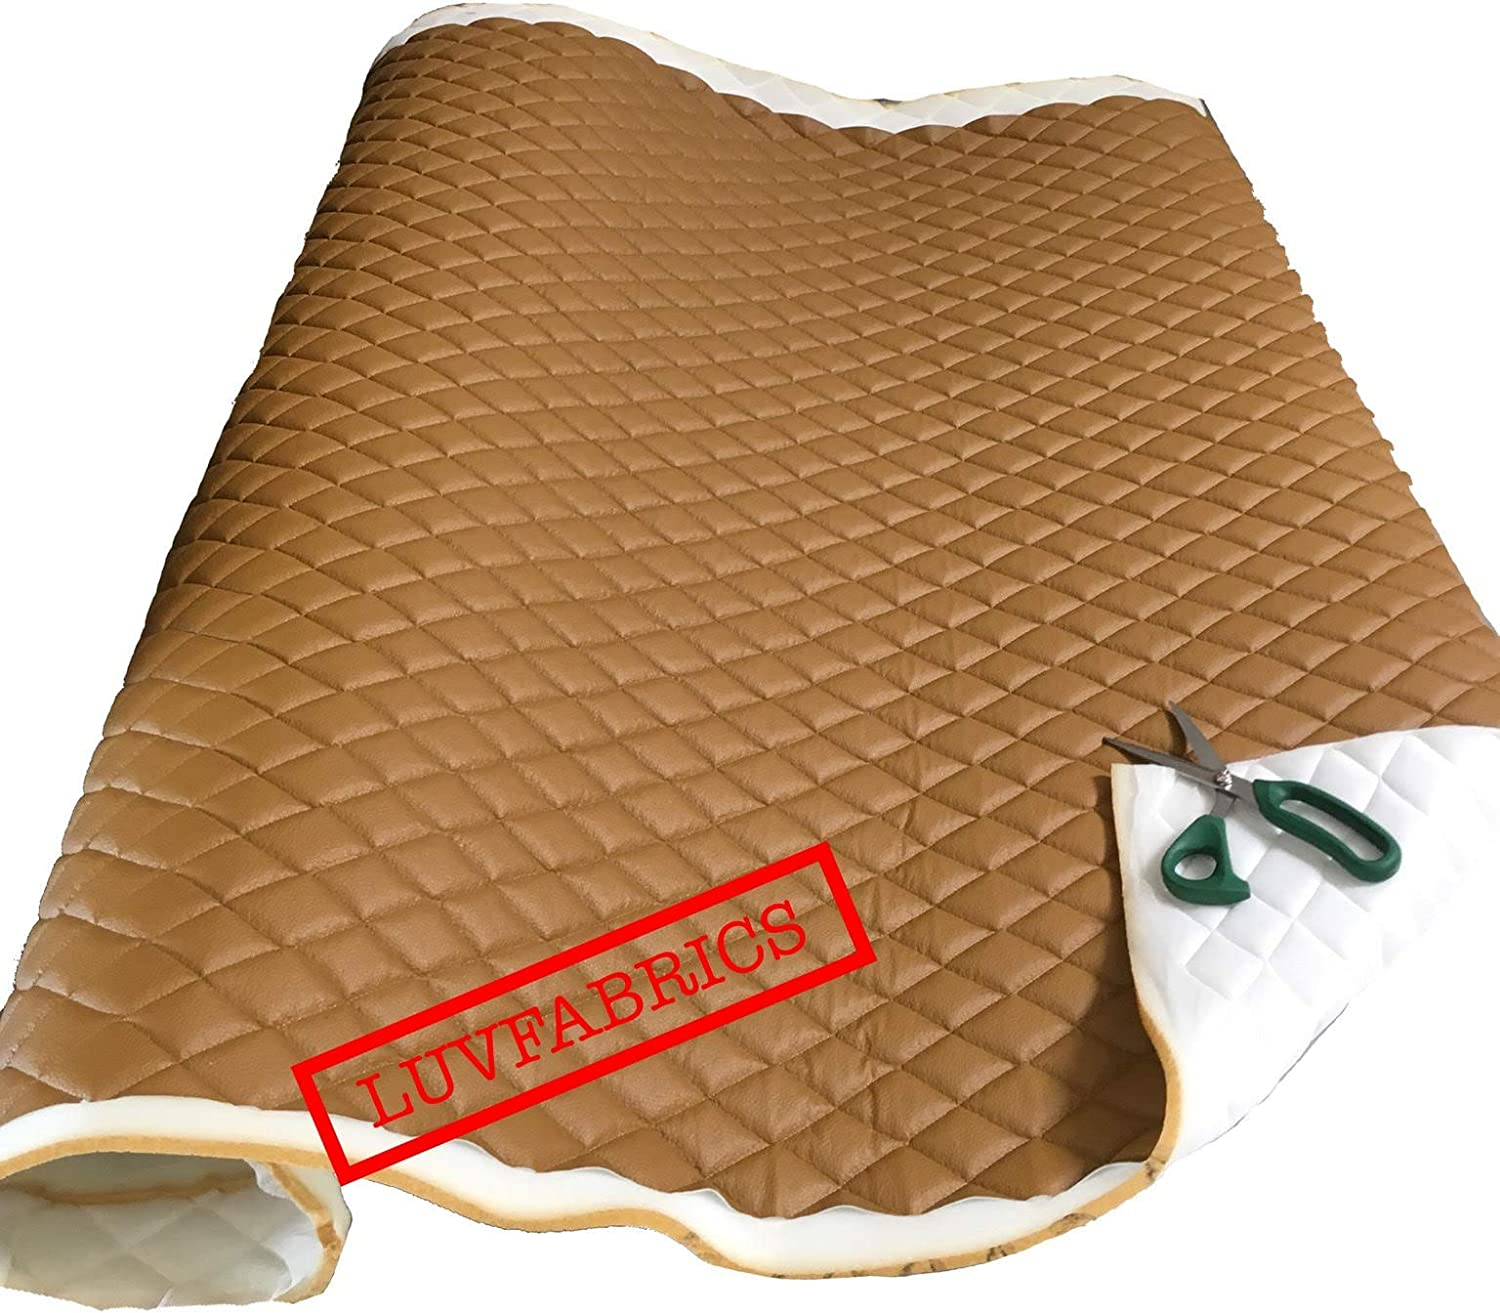 Diamond Quilted Textured Soft Vinyl Faux Leather Upholstery Fabric Brown Colour